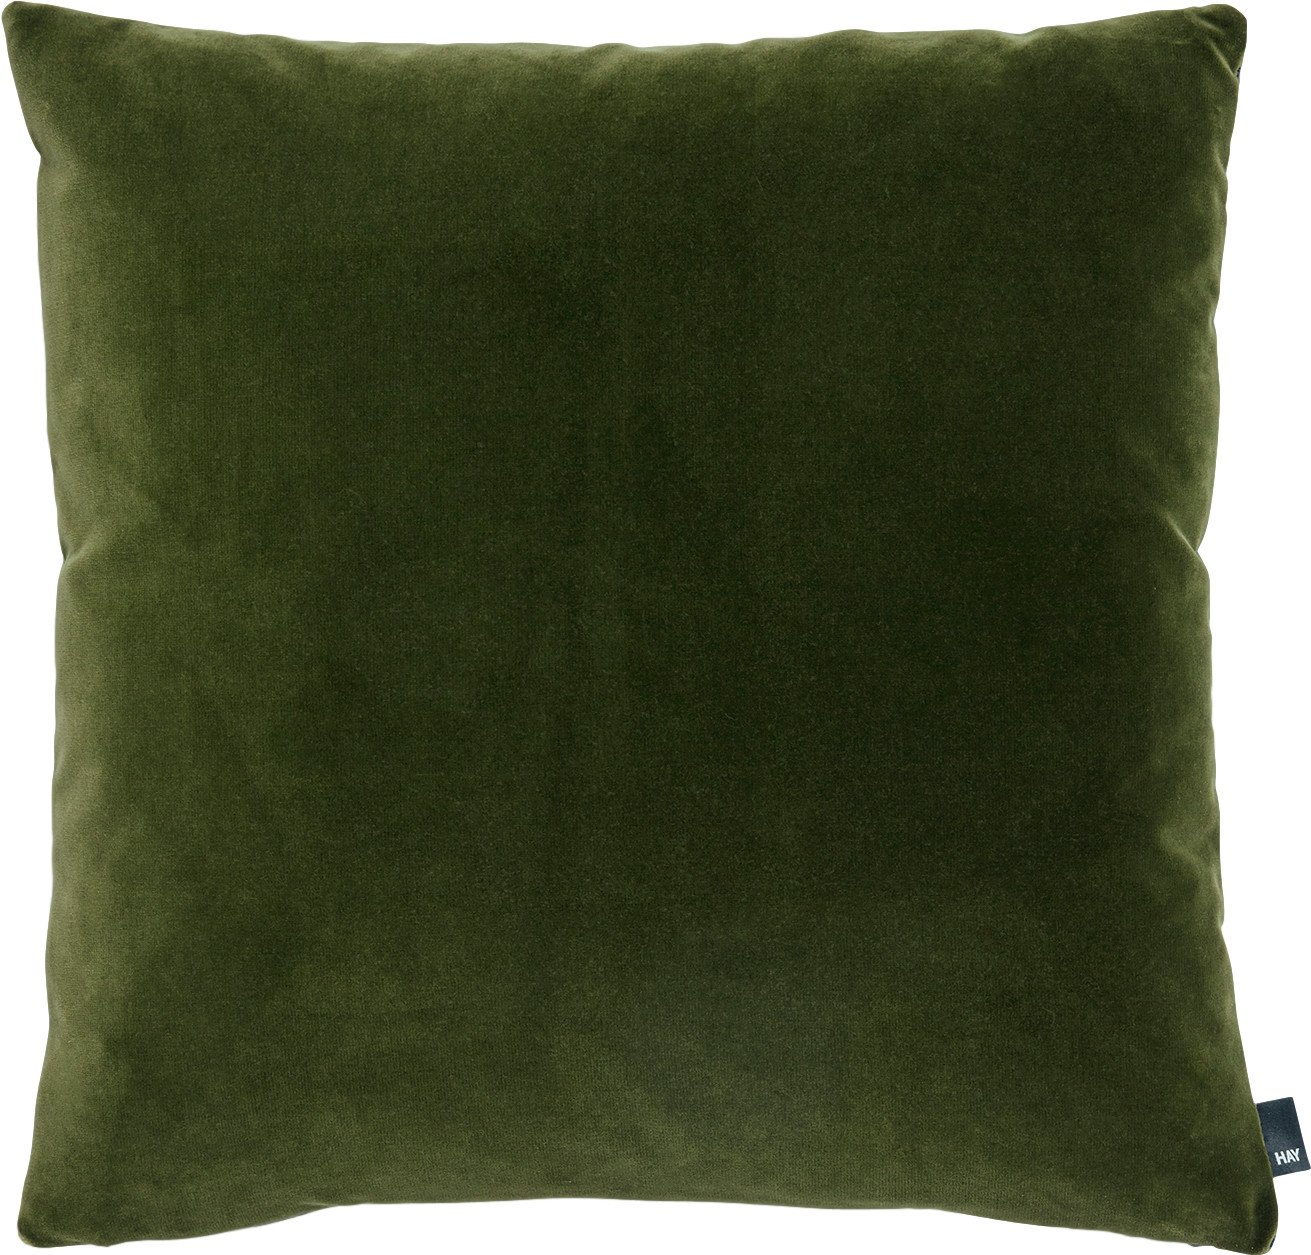 Eclectic Col. Cushion 50 x 50 cm Moss, HAY